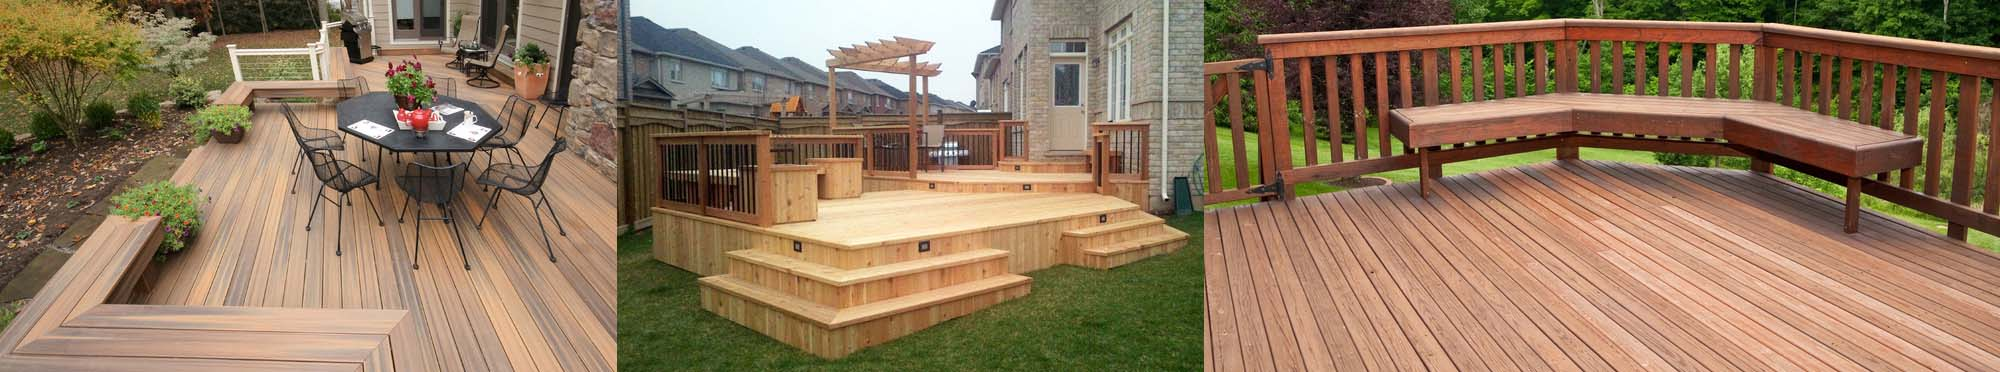 East Coast Construction and Remodeling Inc. - Decks and Patios